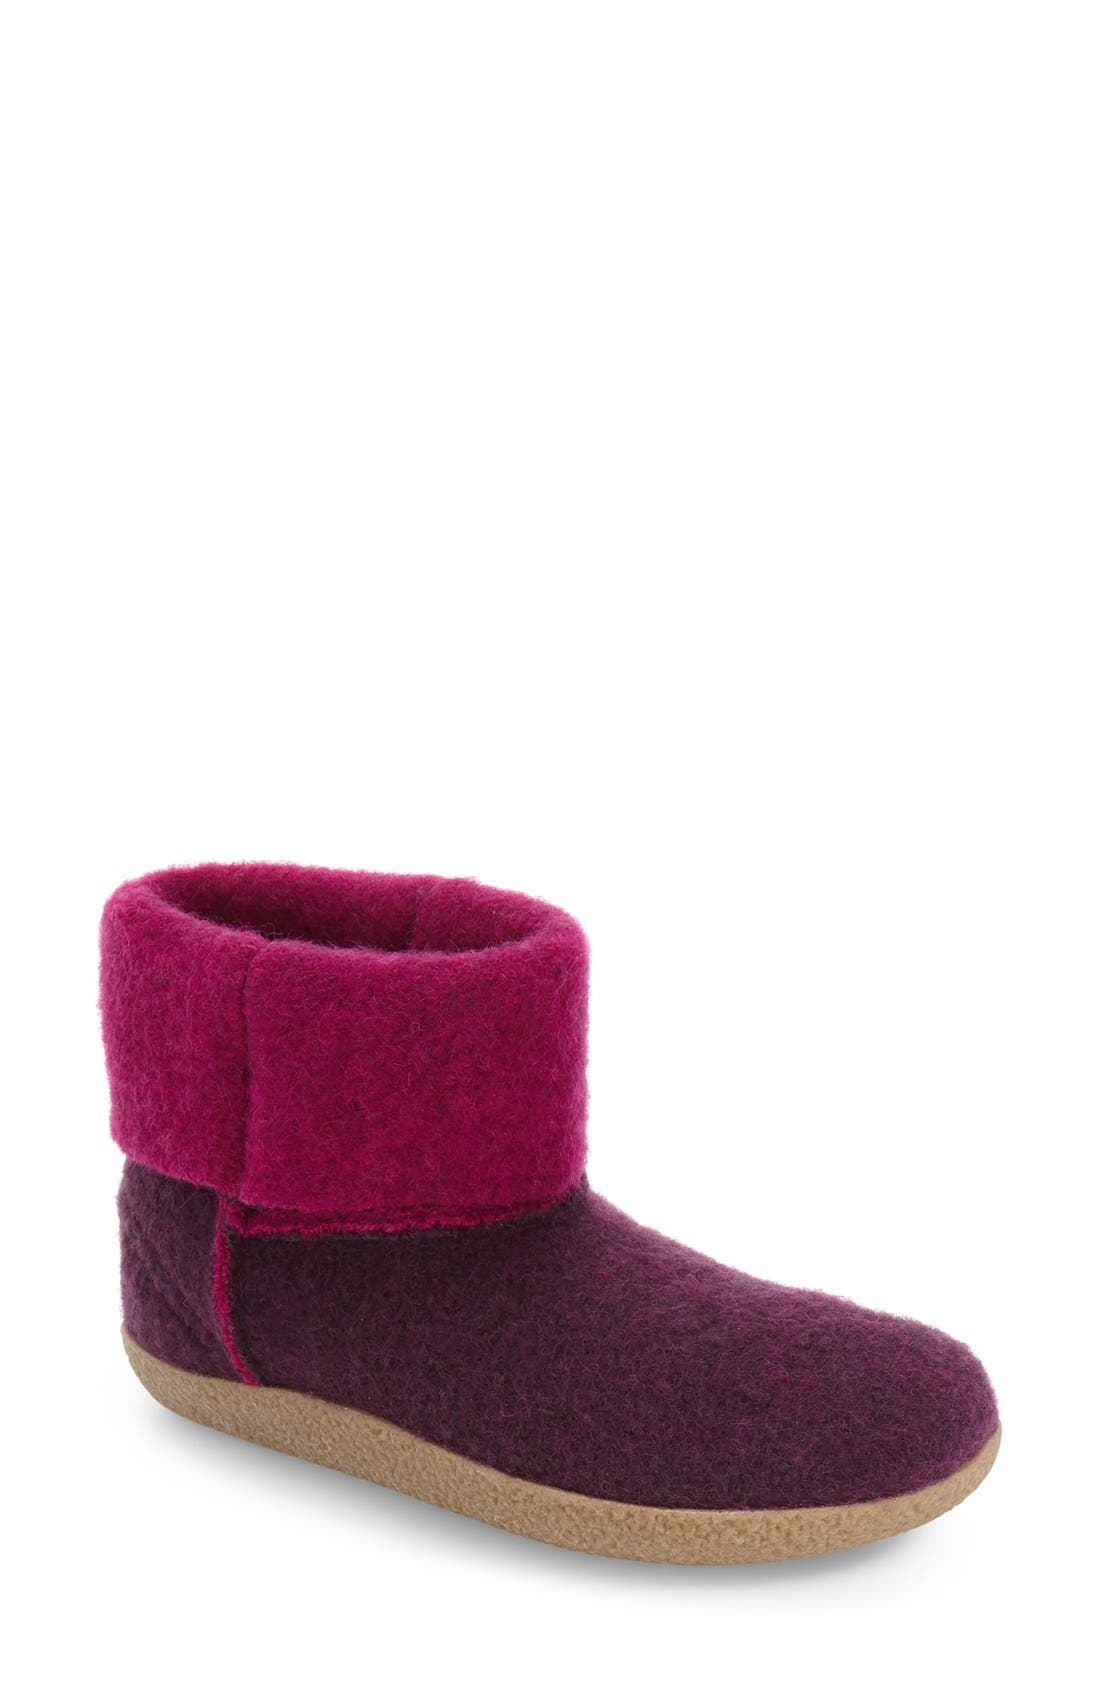 Giesswein Bigelow Cuffed Water Repellent Slipper (Women)